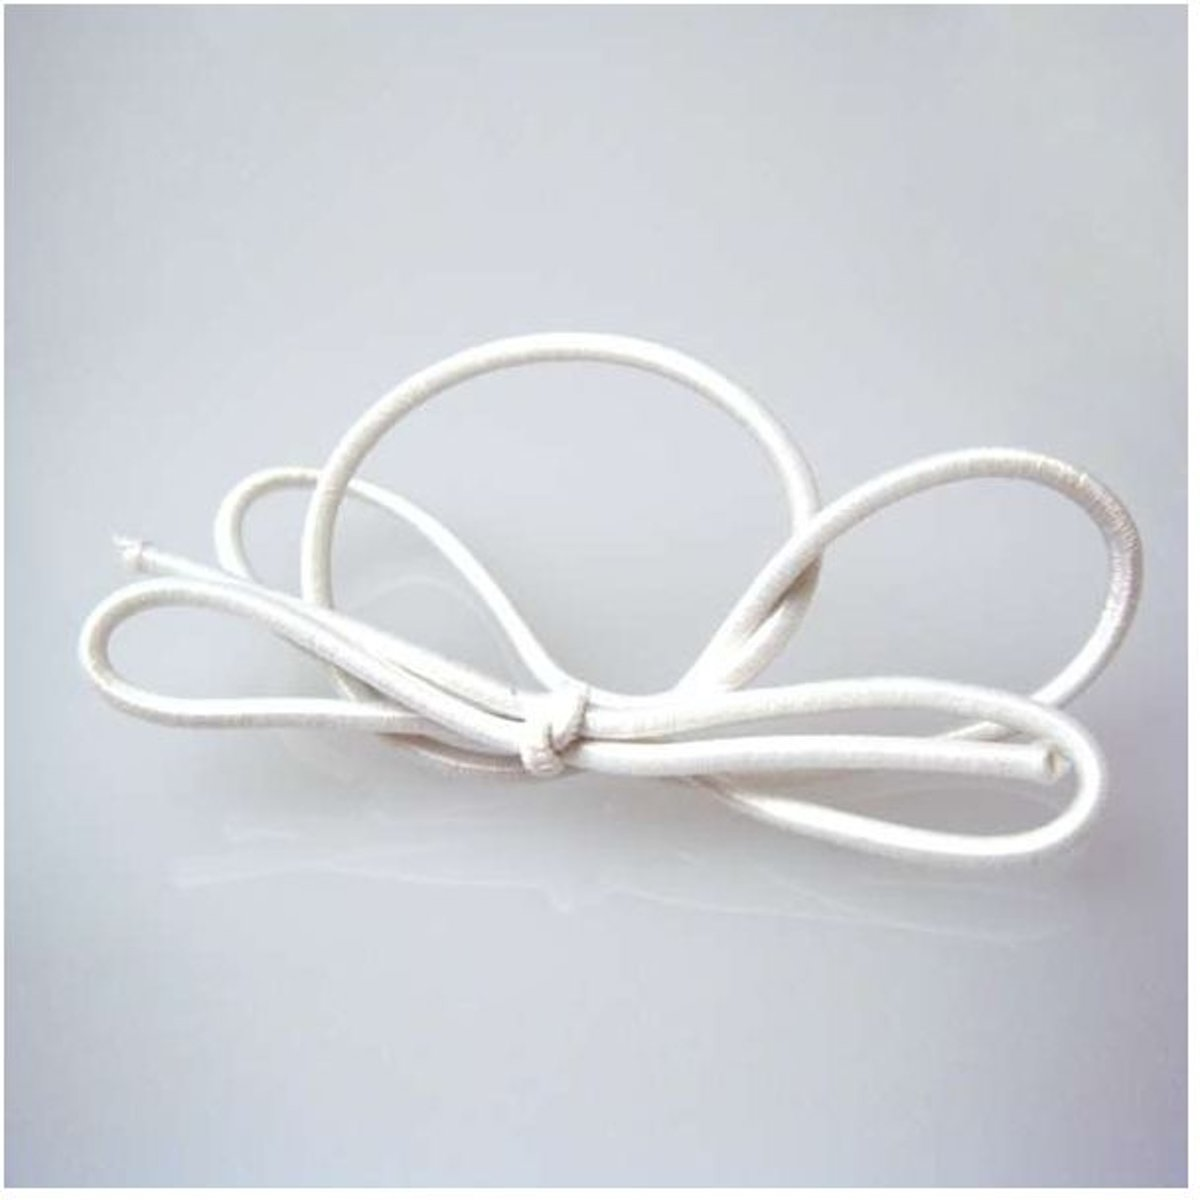 Stretch Loop 20cm Solid White (50 pcs) [8SW]